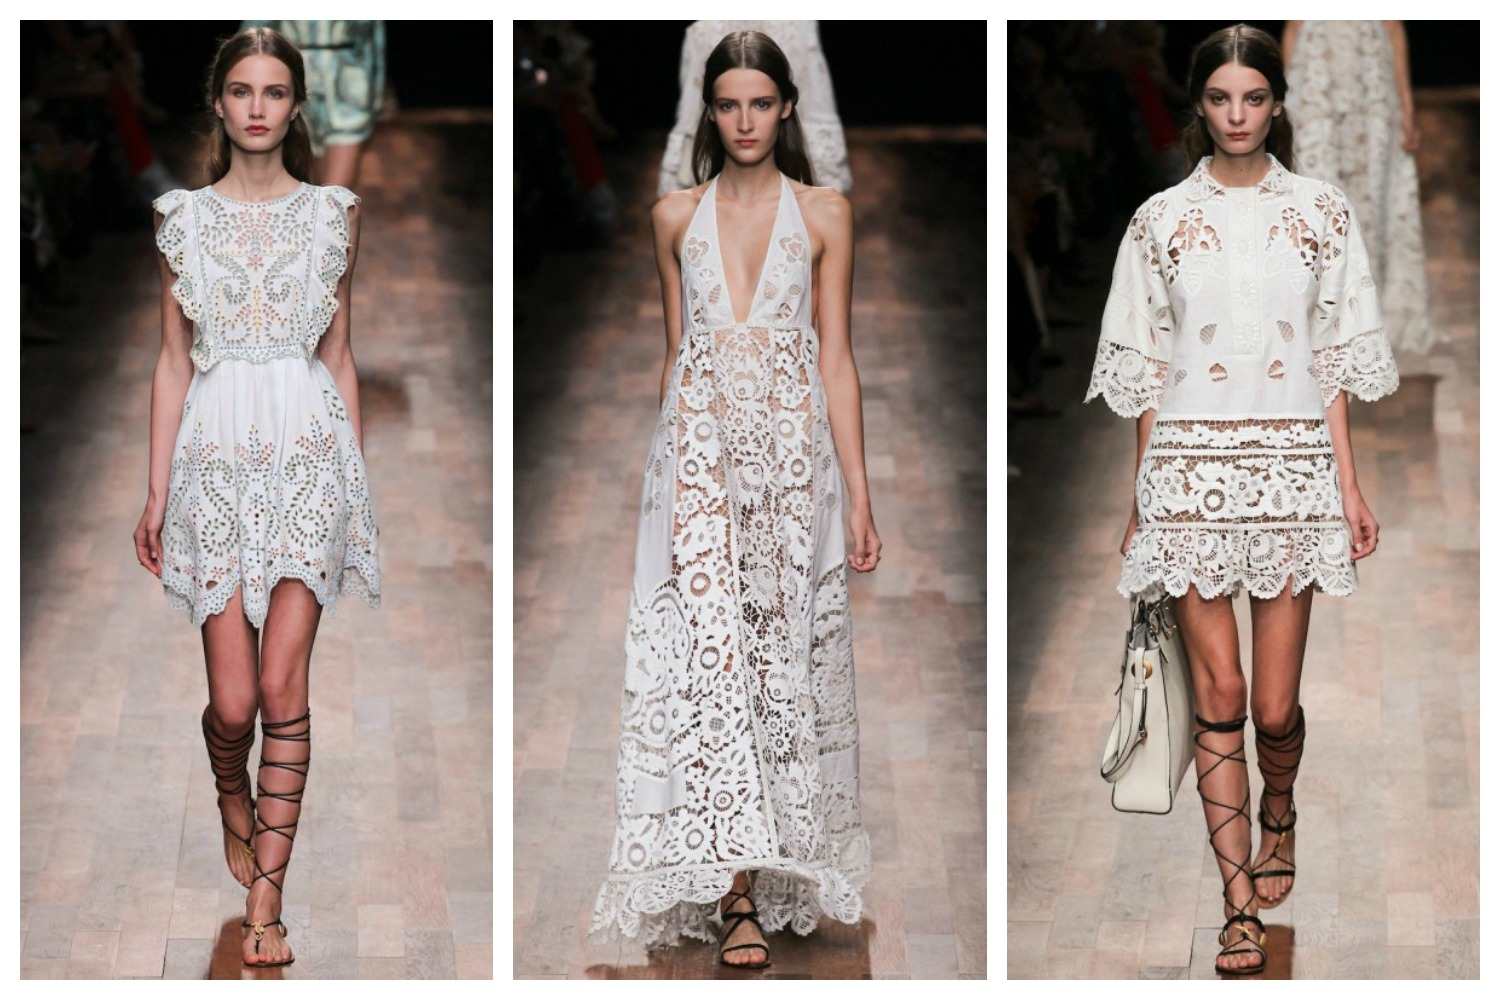 b1bce9cece2 white-lace-fashion-trend-spring-summer-2015.jpg